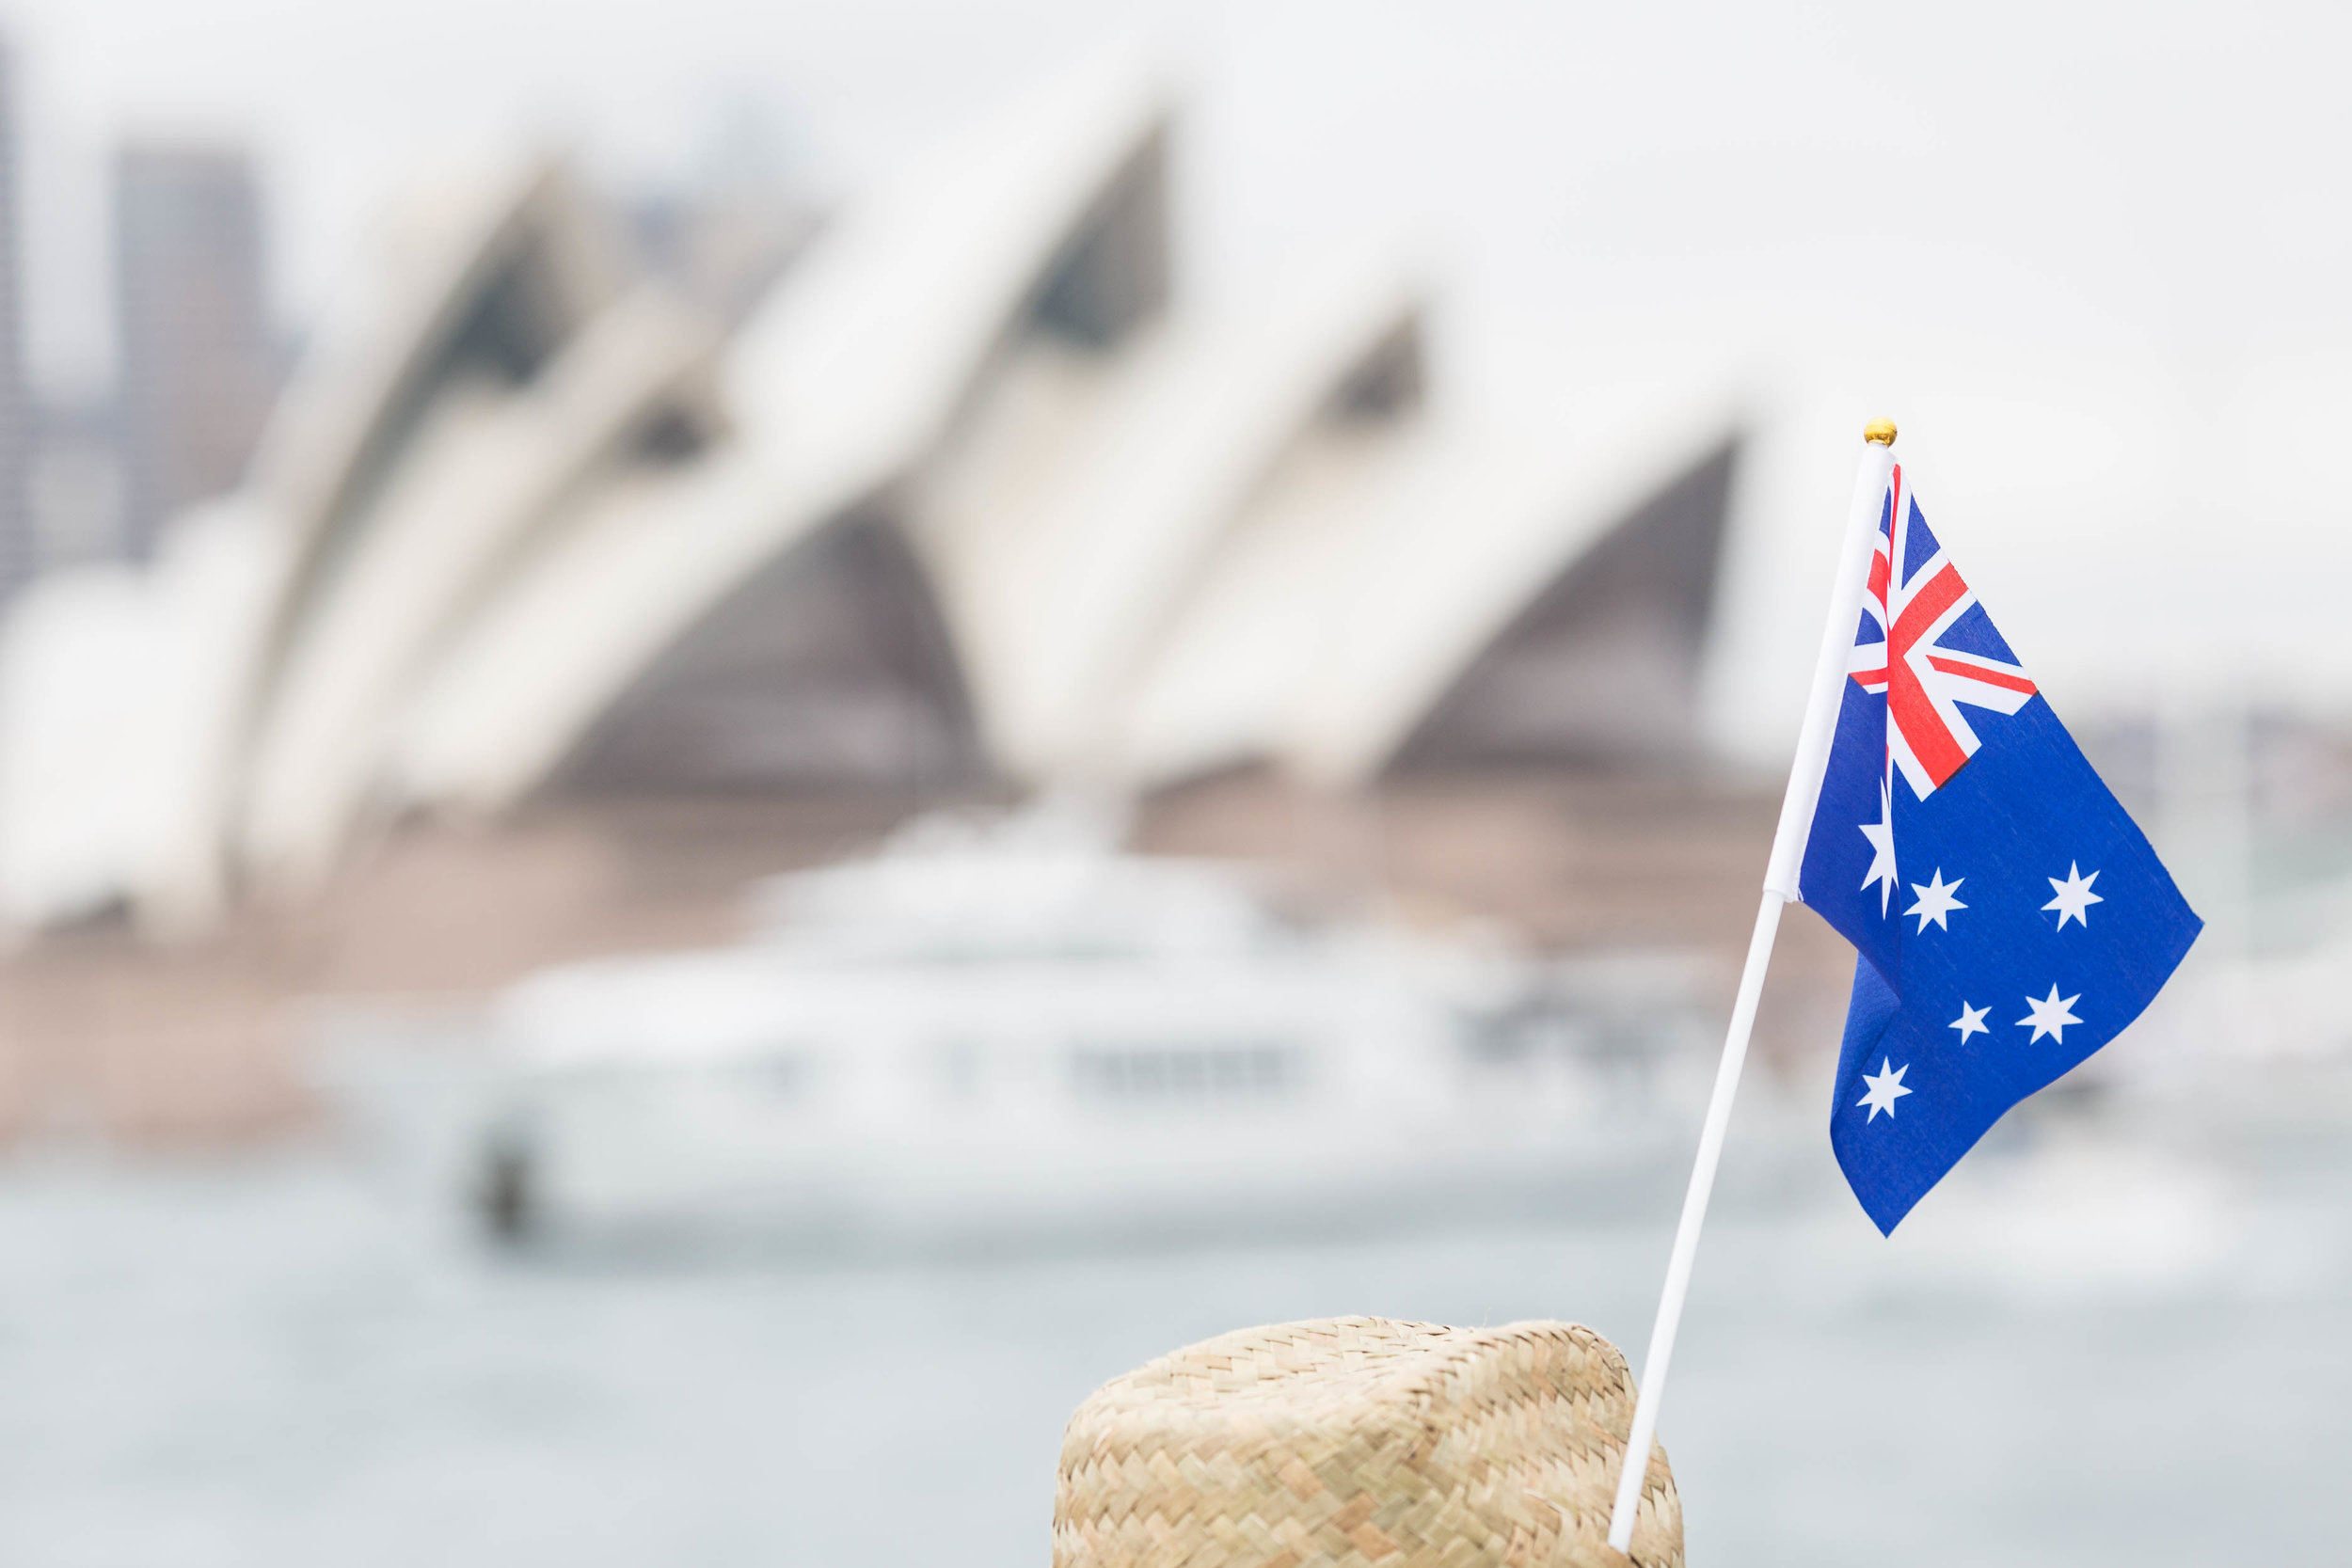 Australia DAy - Hope you had a great Australia Day on Sydney Harbour.If you click below you will be able to download any photo you like fromthe day for a modest sum. All Proceeds go to the Australian Maritime Museum.Enjoy!